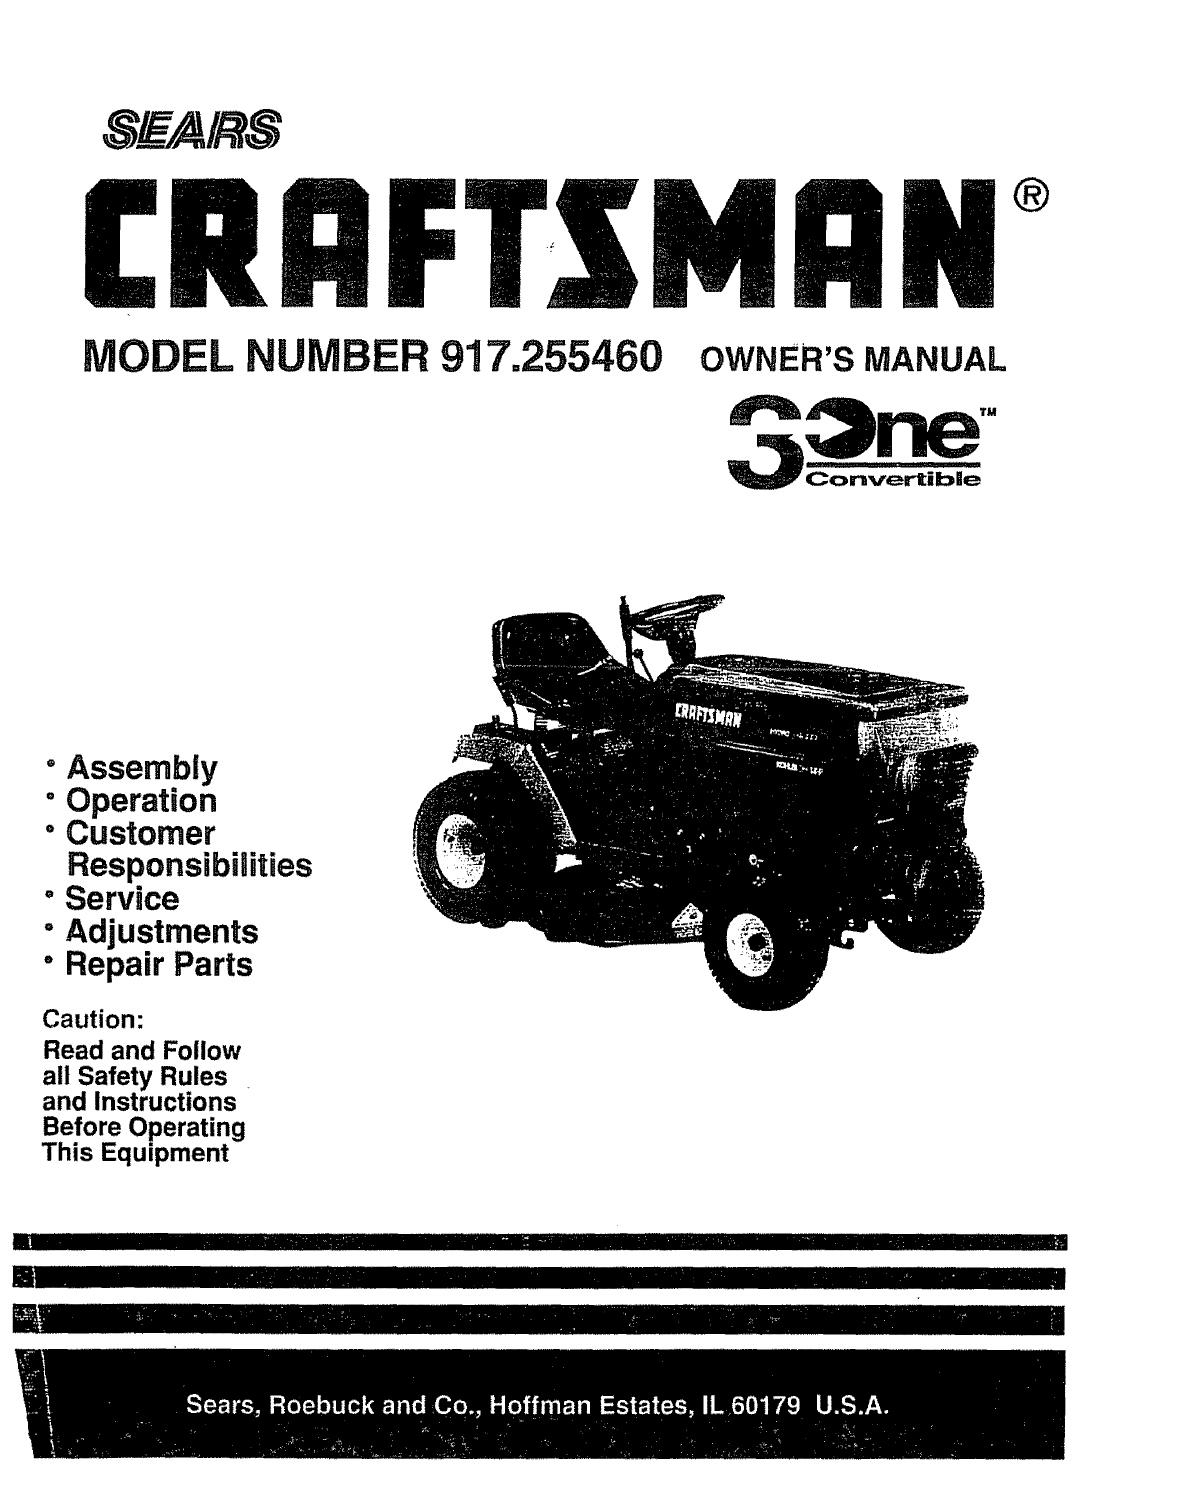 Sears Lt1000 Riding Mower Wiring Diagram | Wiring Library - Craftsman Lawn Mower Model 917 Wiring Diagram